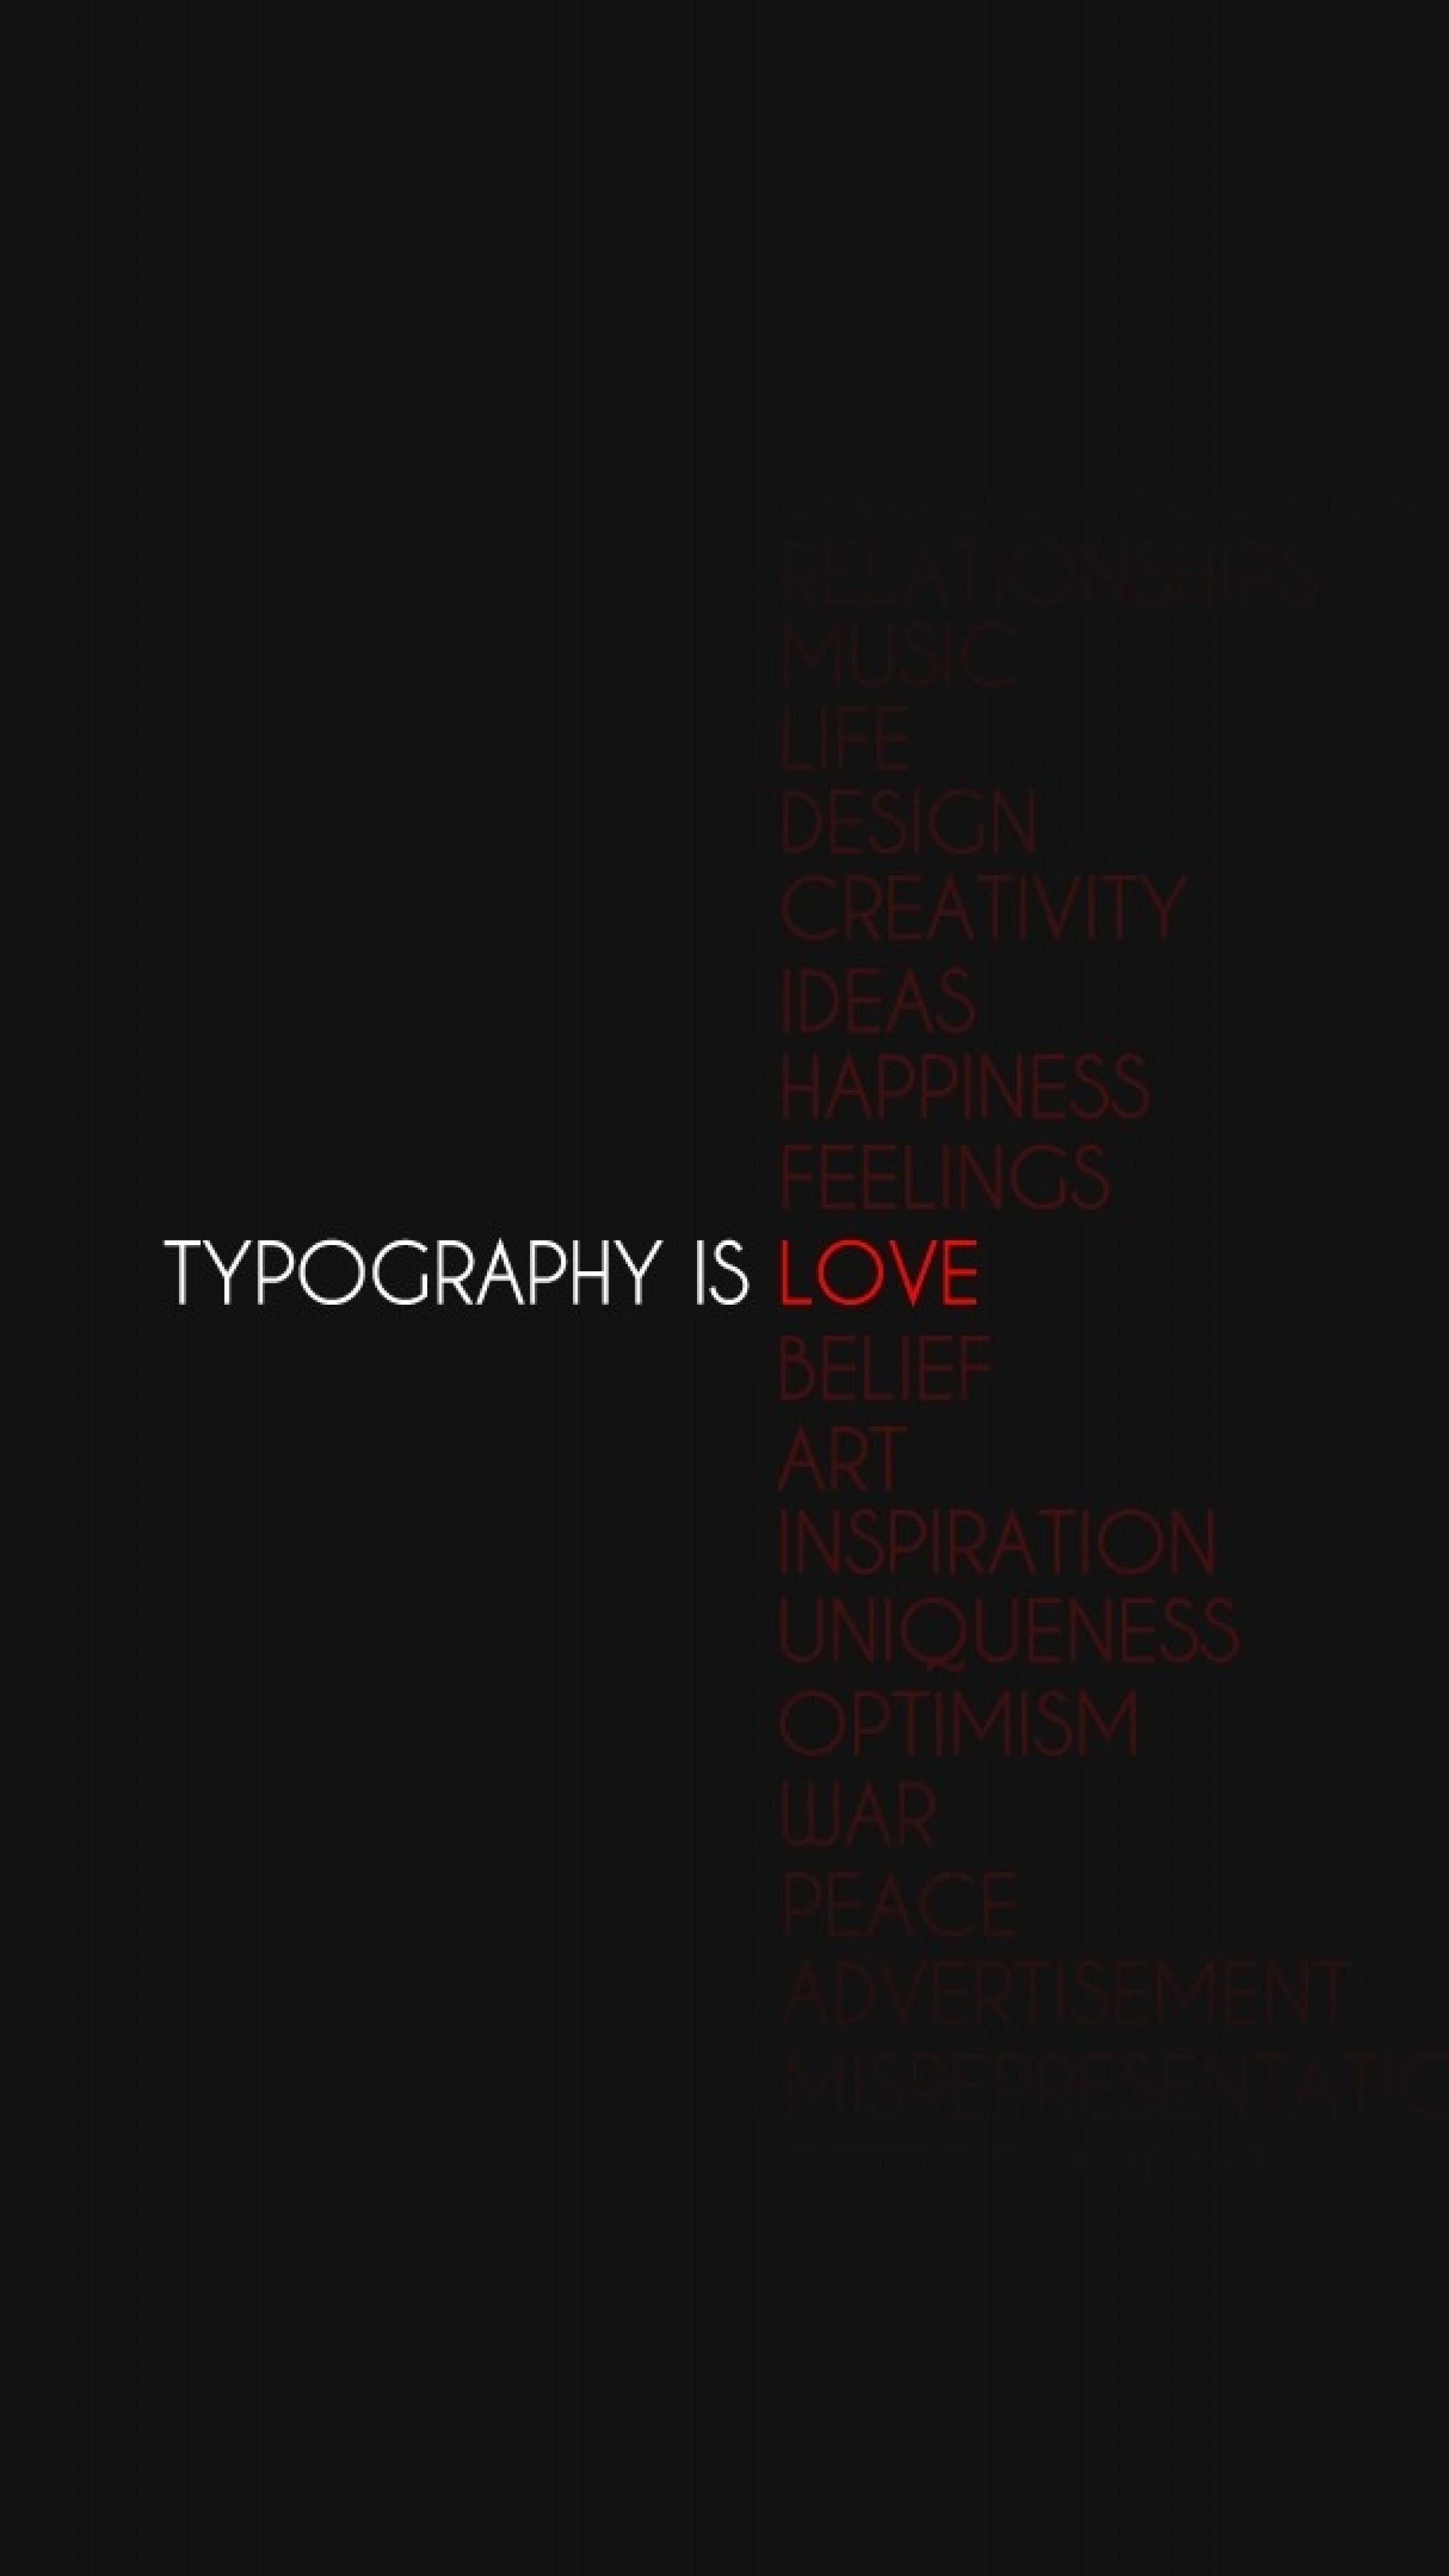 Wallpaper typography is love, black, black background, sign,  reflections